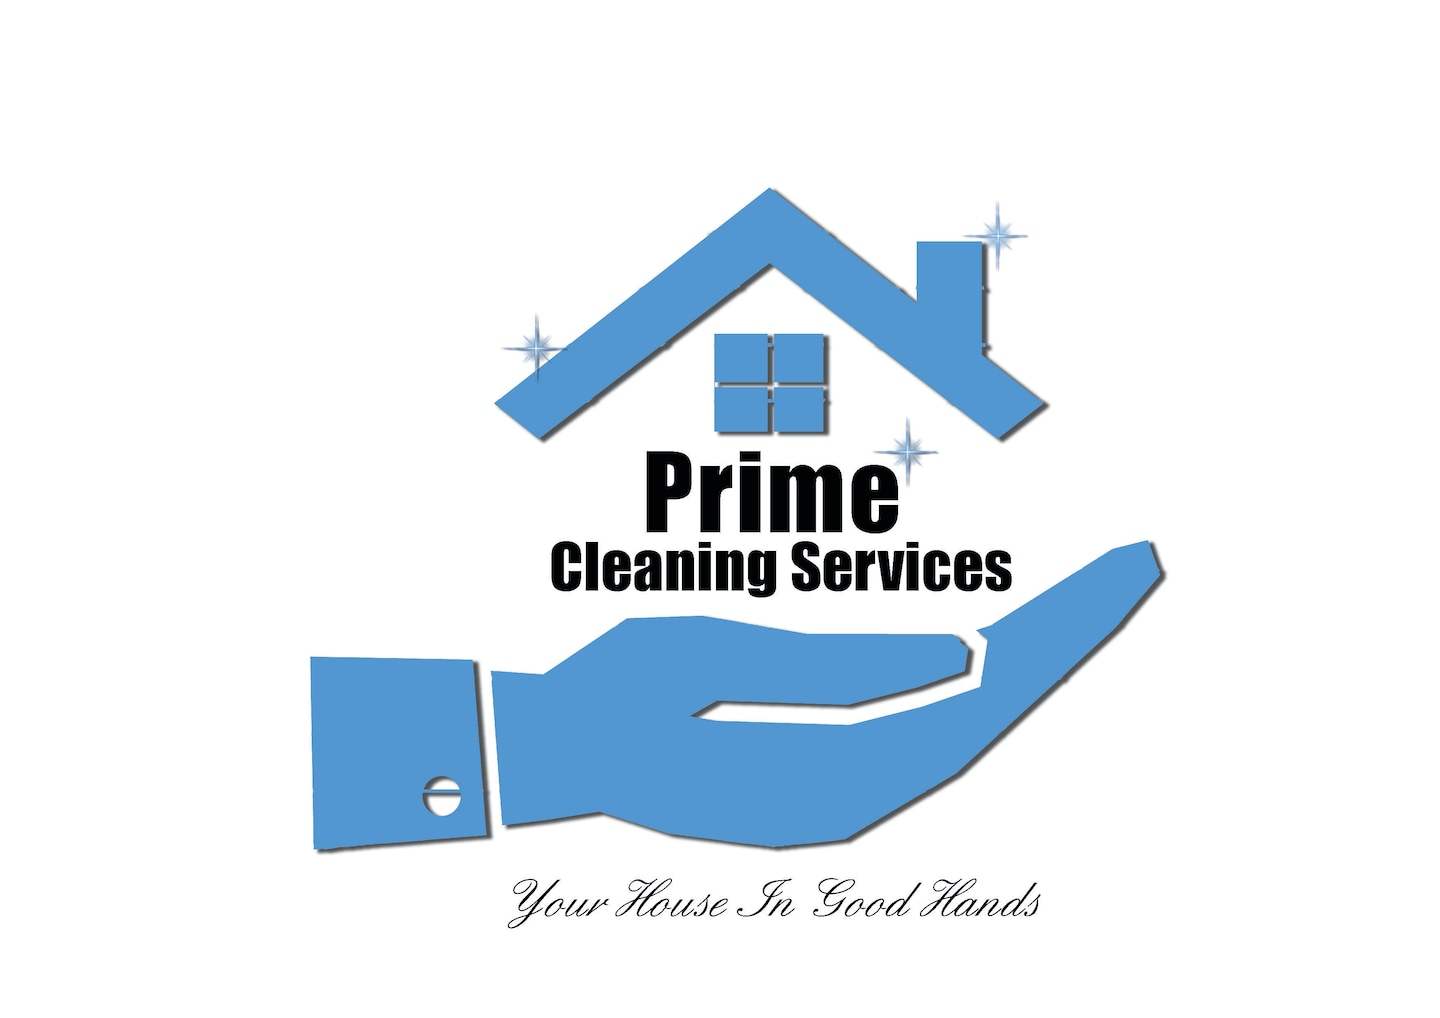 Prime Cleaning Service